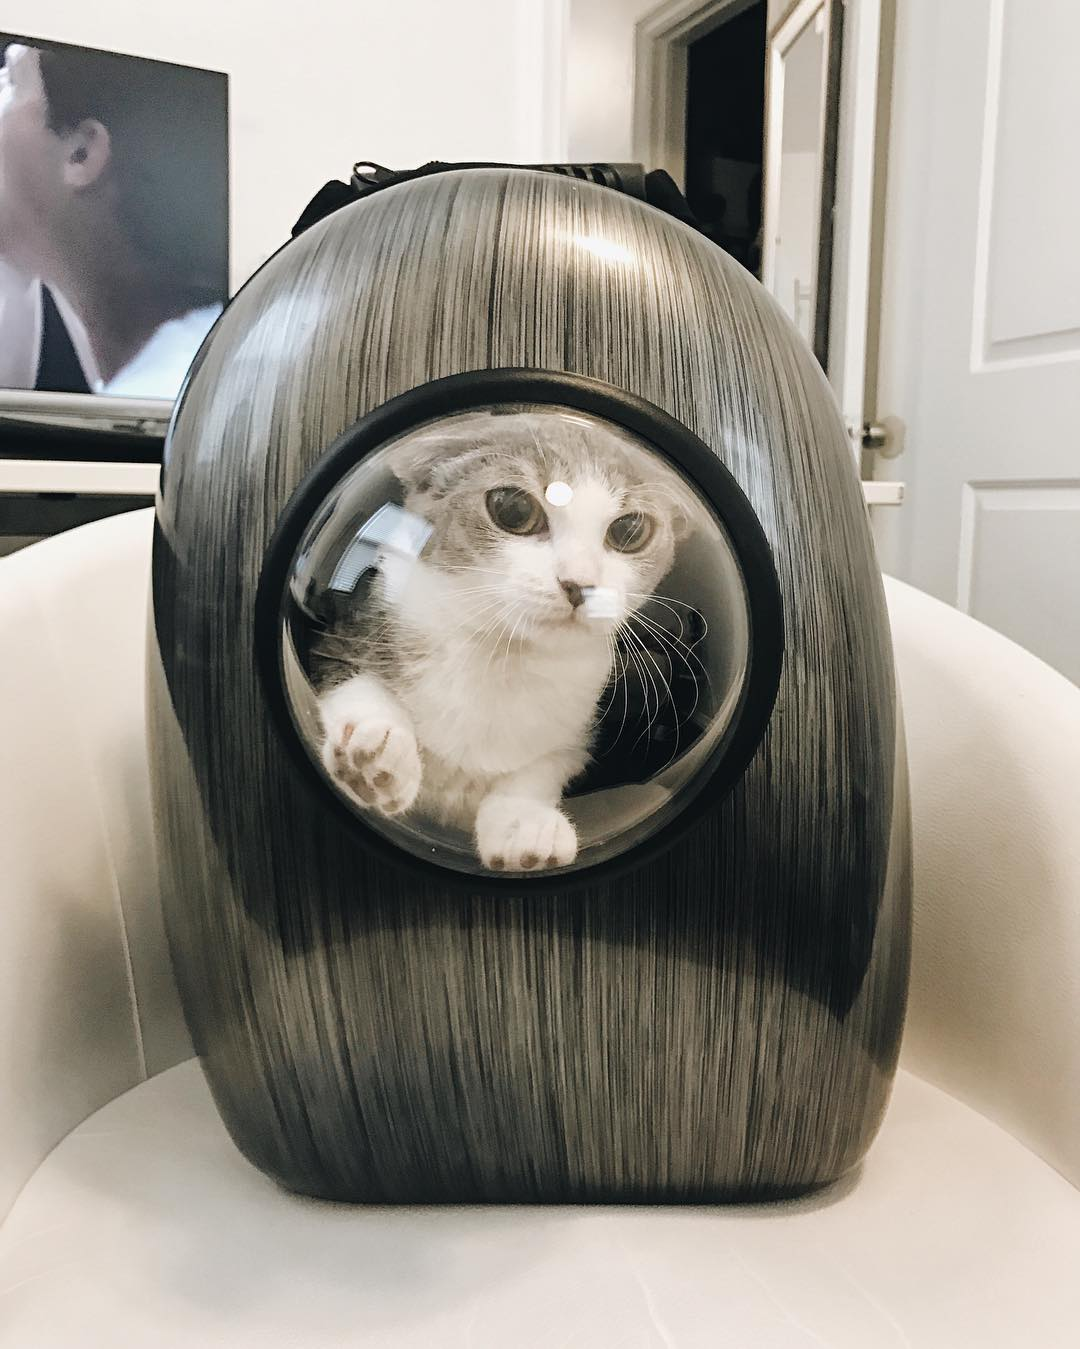 capsule-cat-carrier-backpack-cat-travel-like-an-astronaut-004